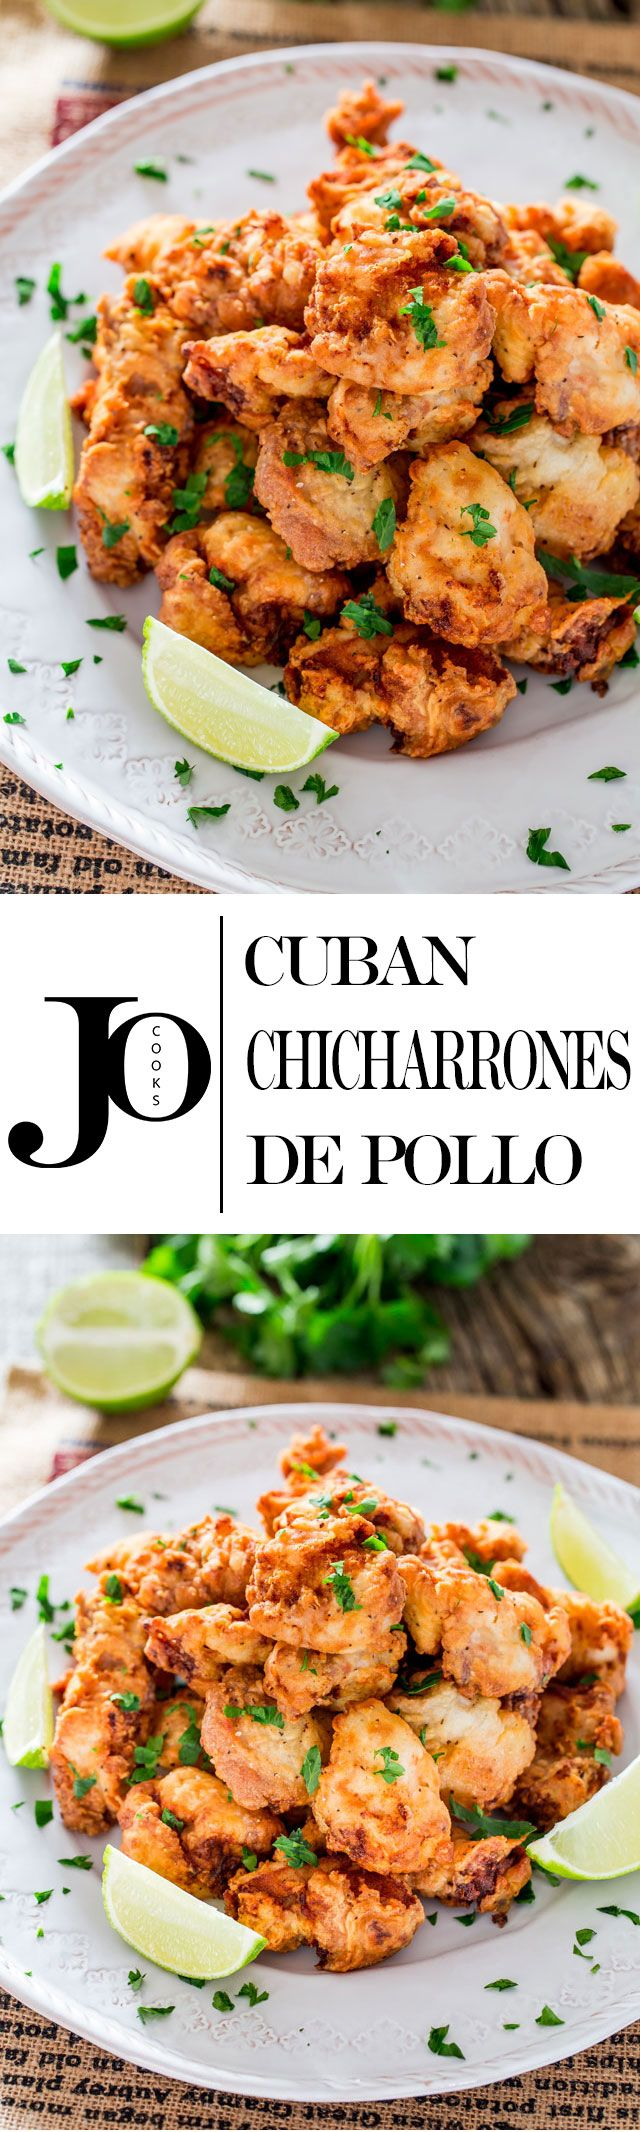 Cuban Chicharrones de Pollo - chicken thigh pieces marinated in a garlic, lime and rum marinade, dredged through flour and fried to perfection.